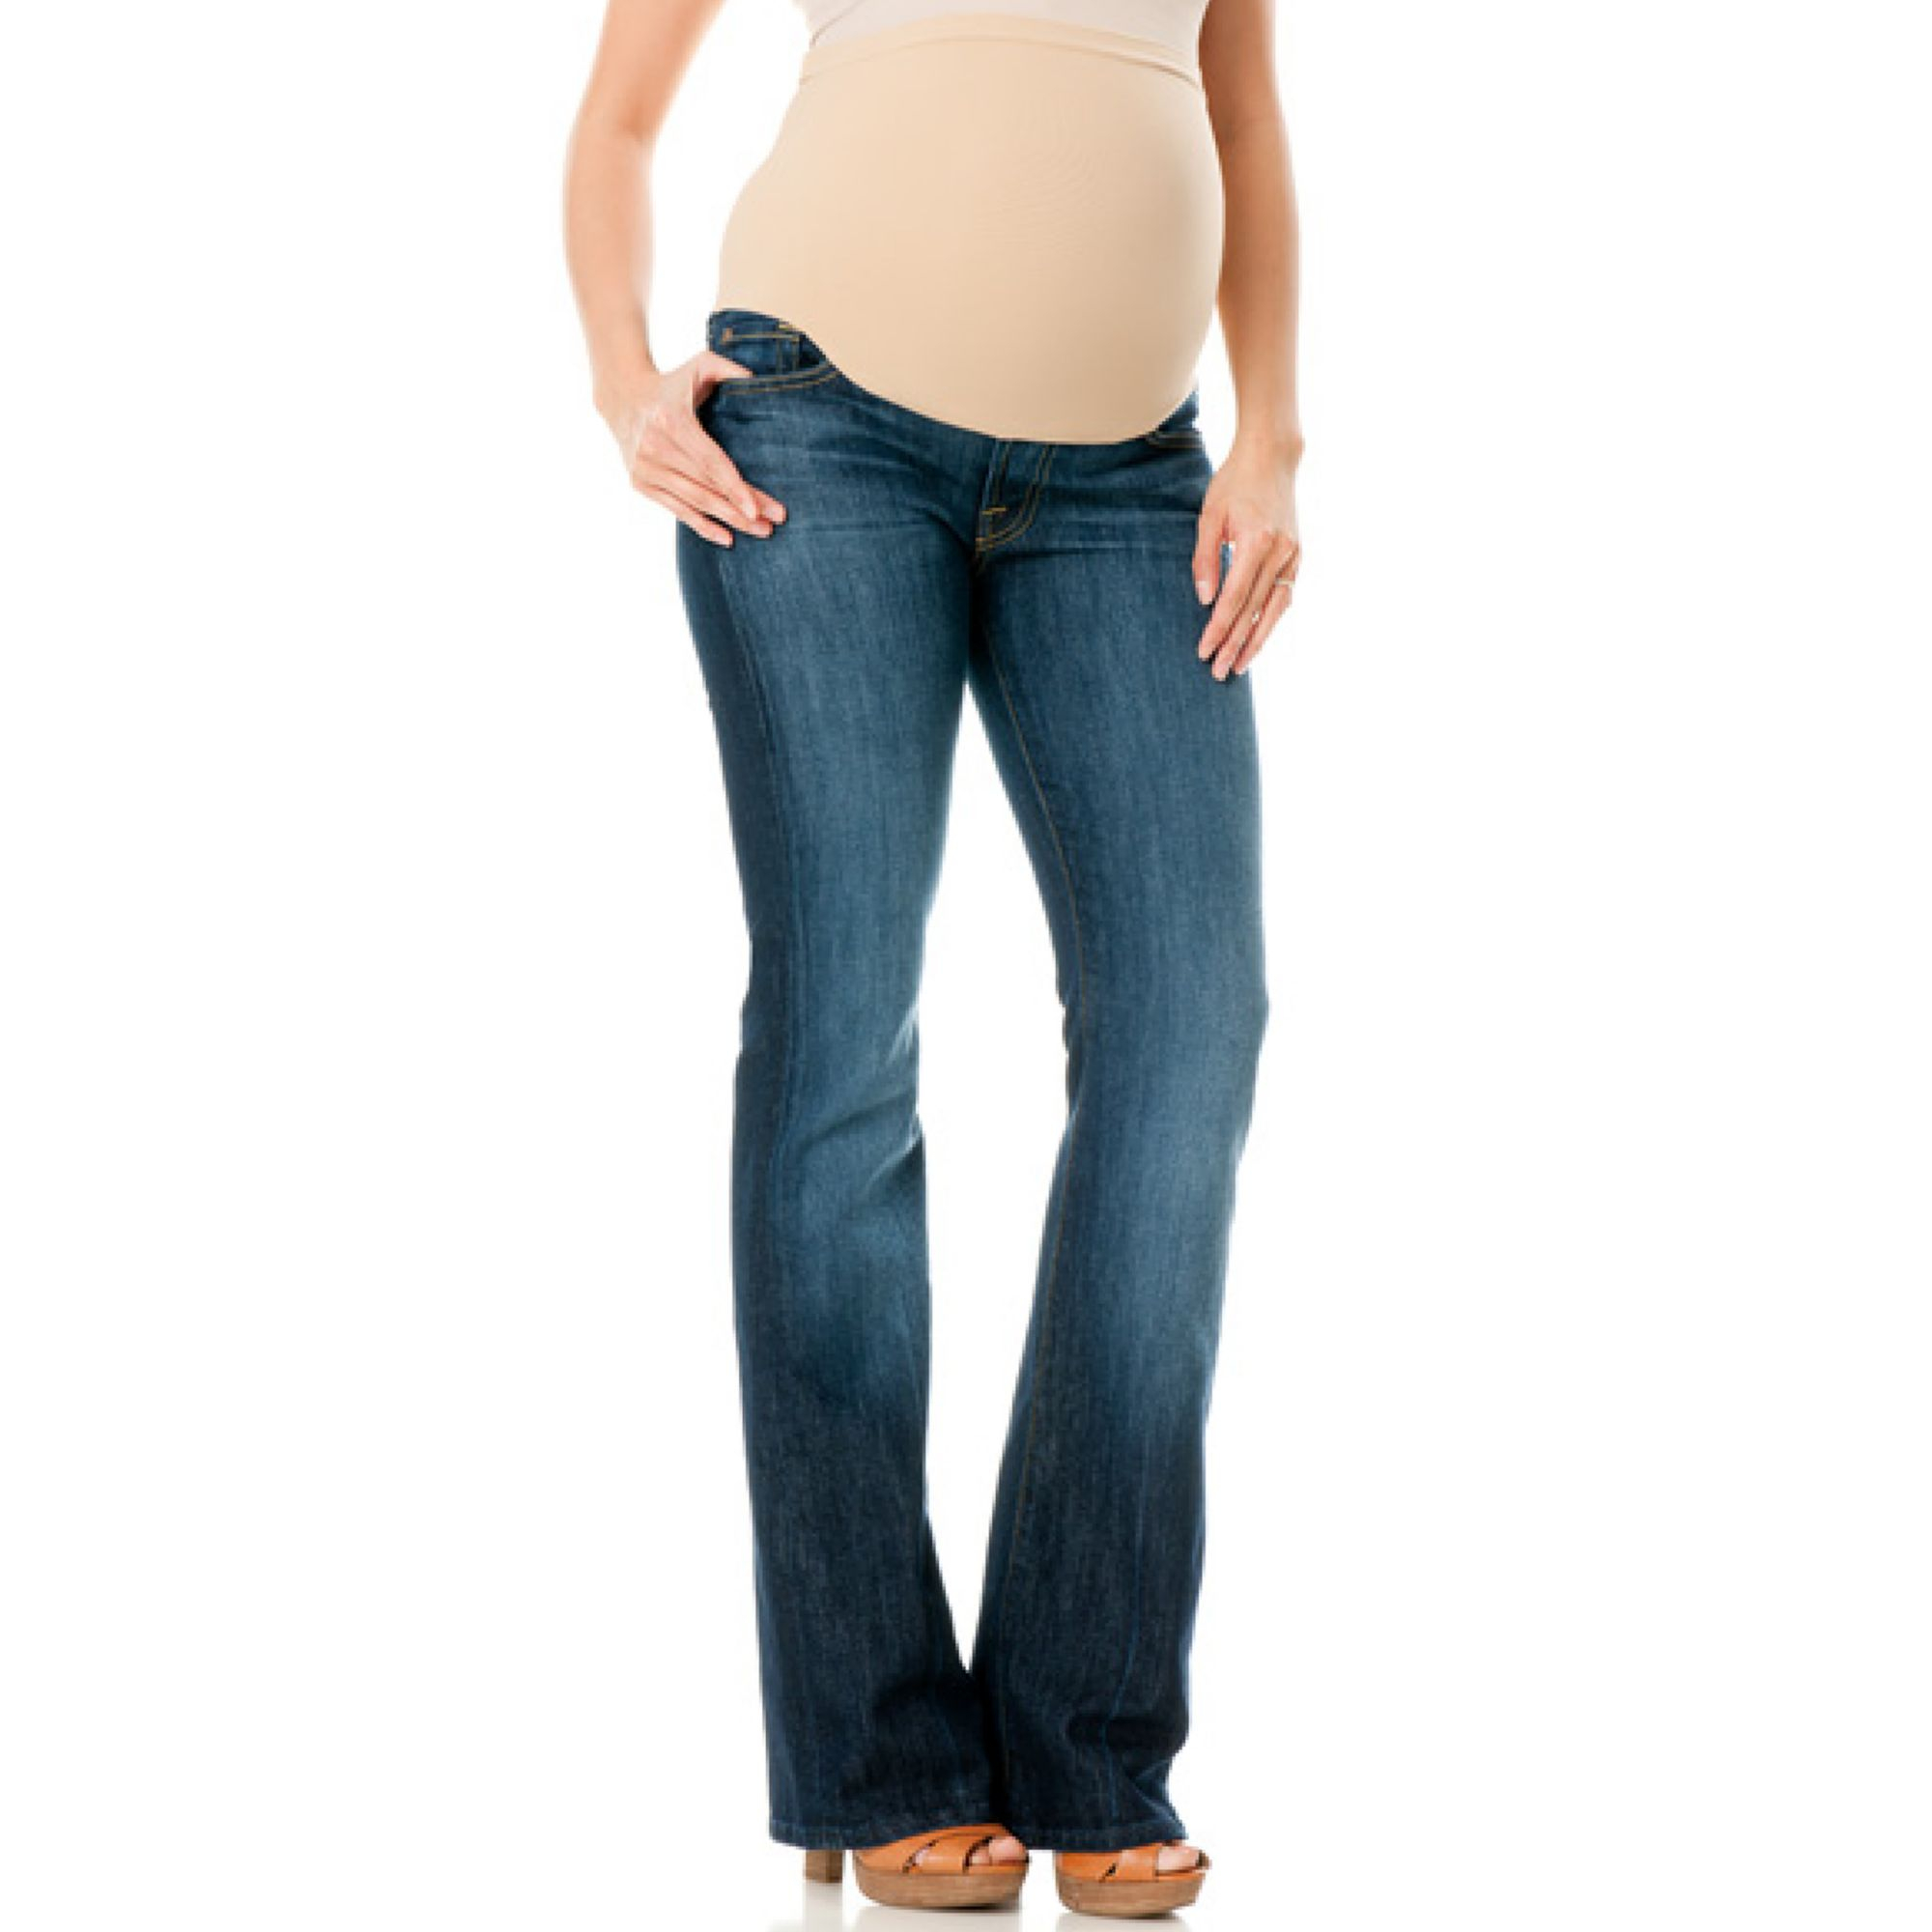 60a8832ac1b5d 7 For All Mankind A Petite Bootcut Maternity Jeans New York Dark ...